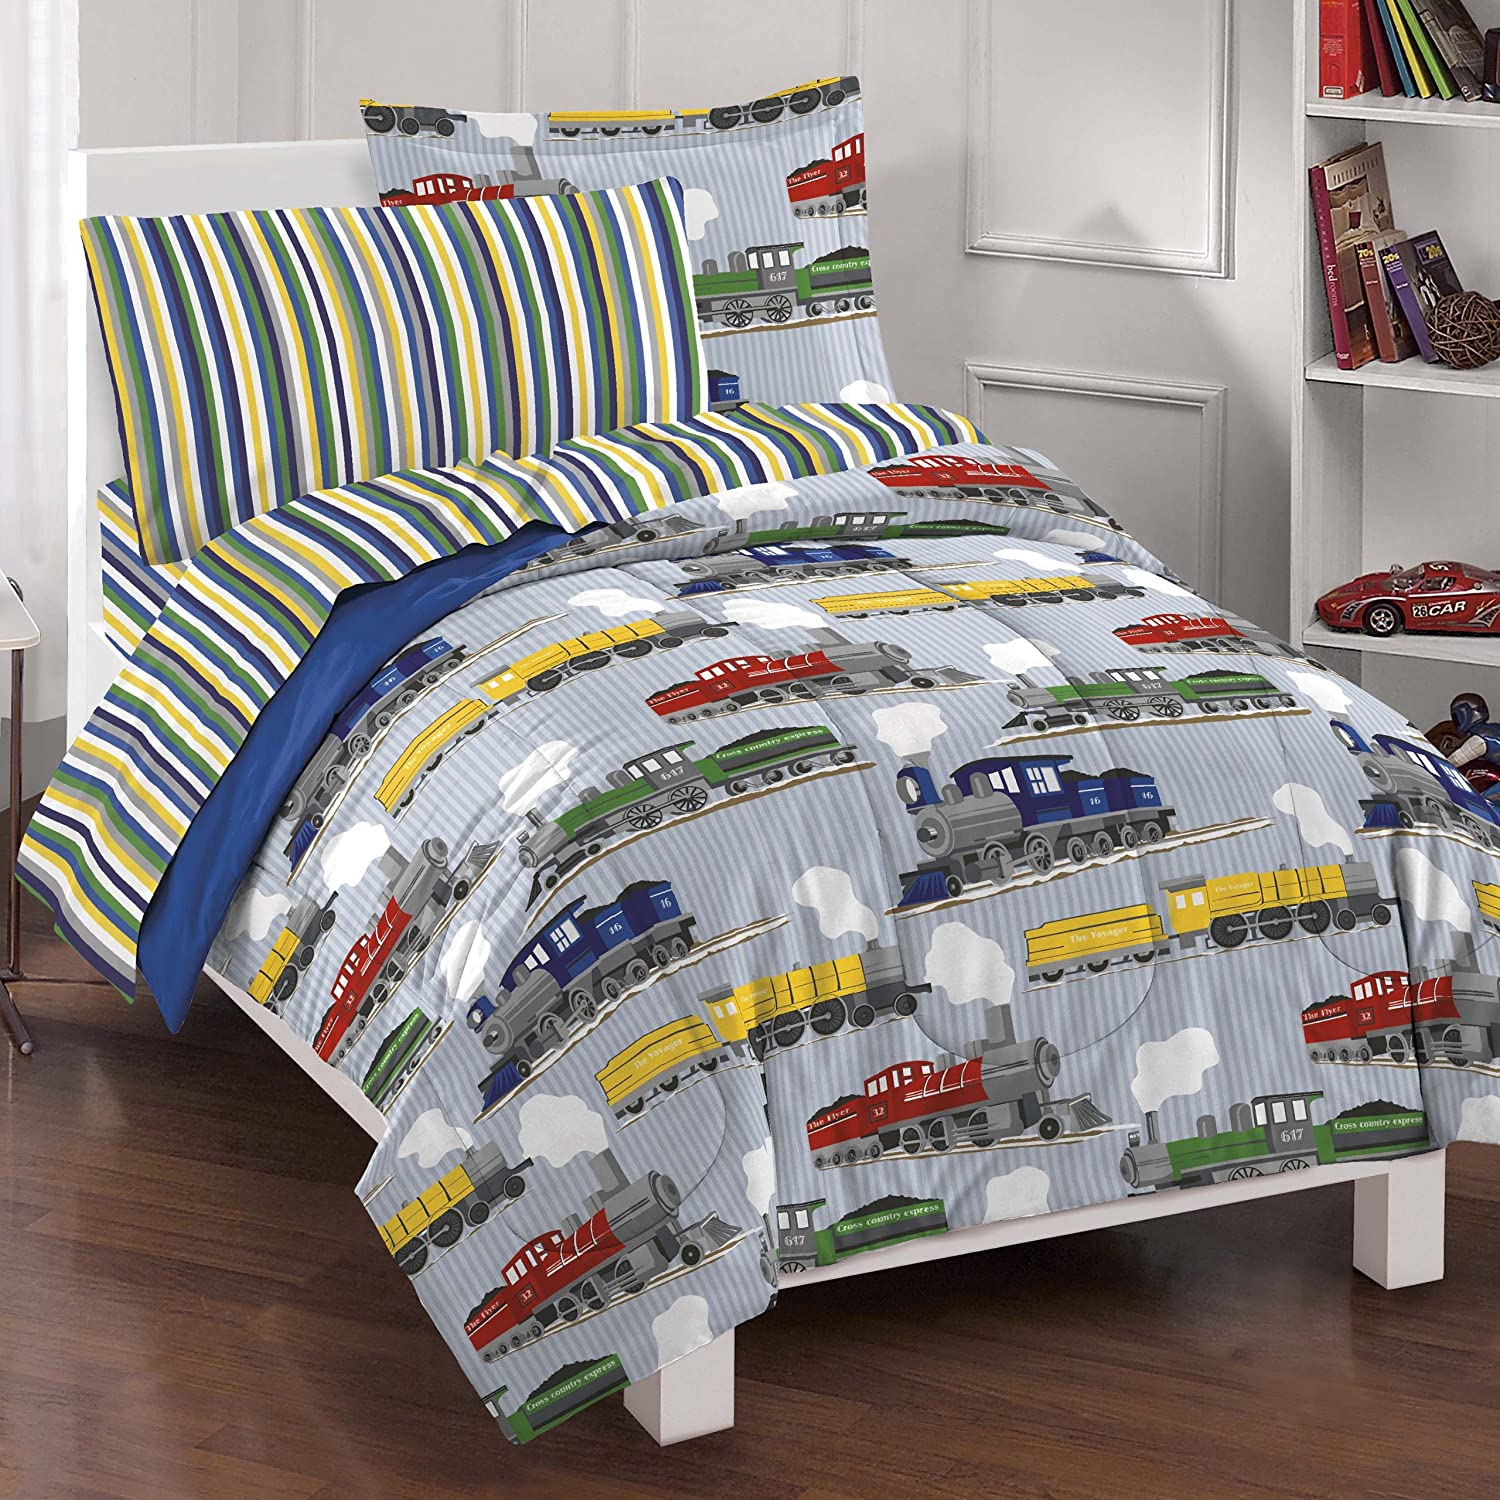 Little Boy Twin Bed Dream Factory Trains Ultra Soft Microfiber Boys Comforter